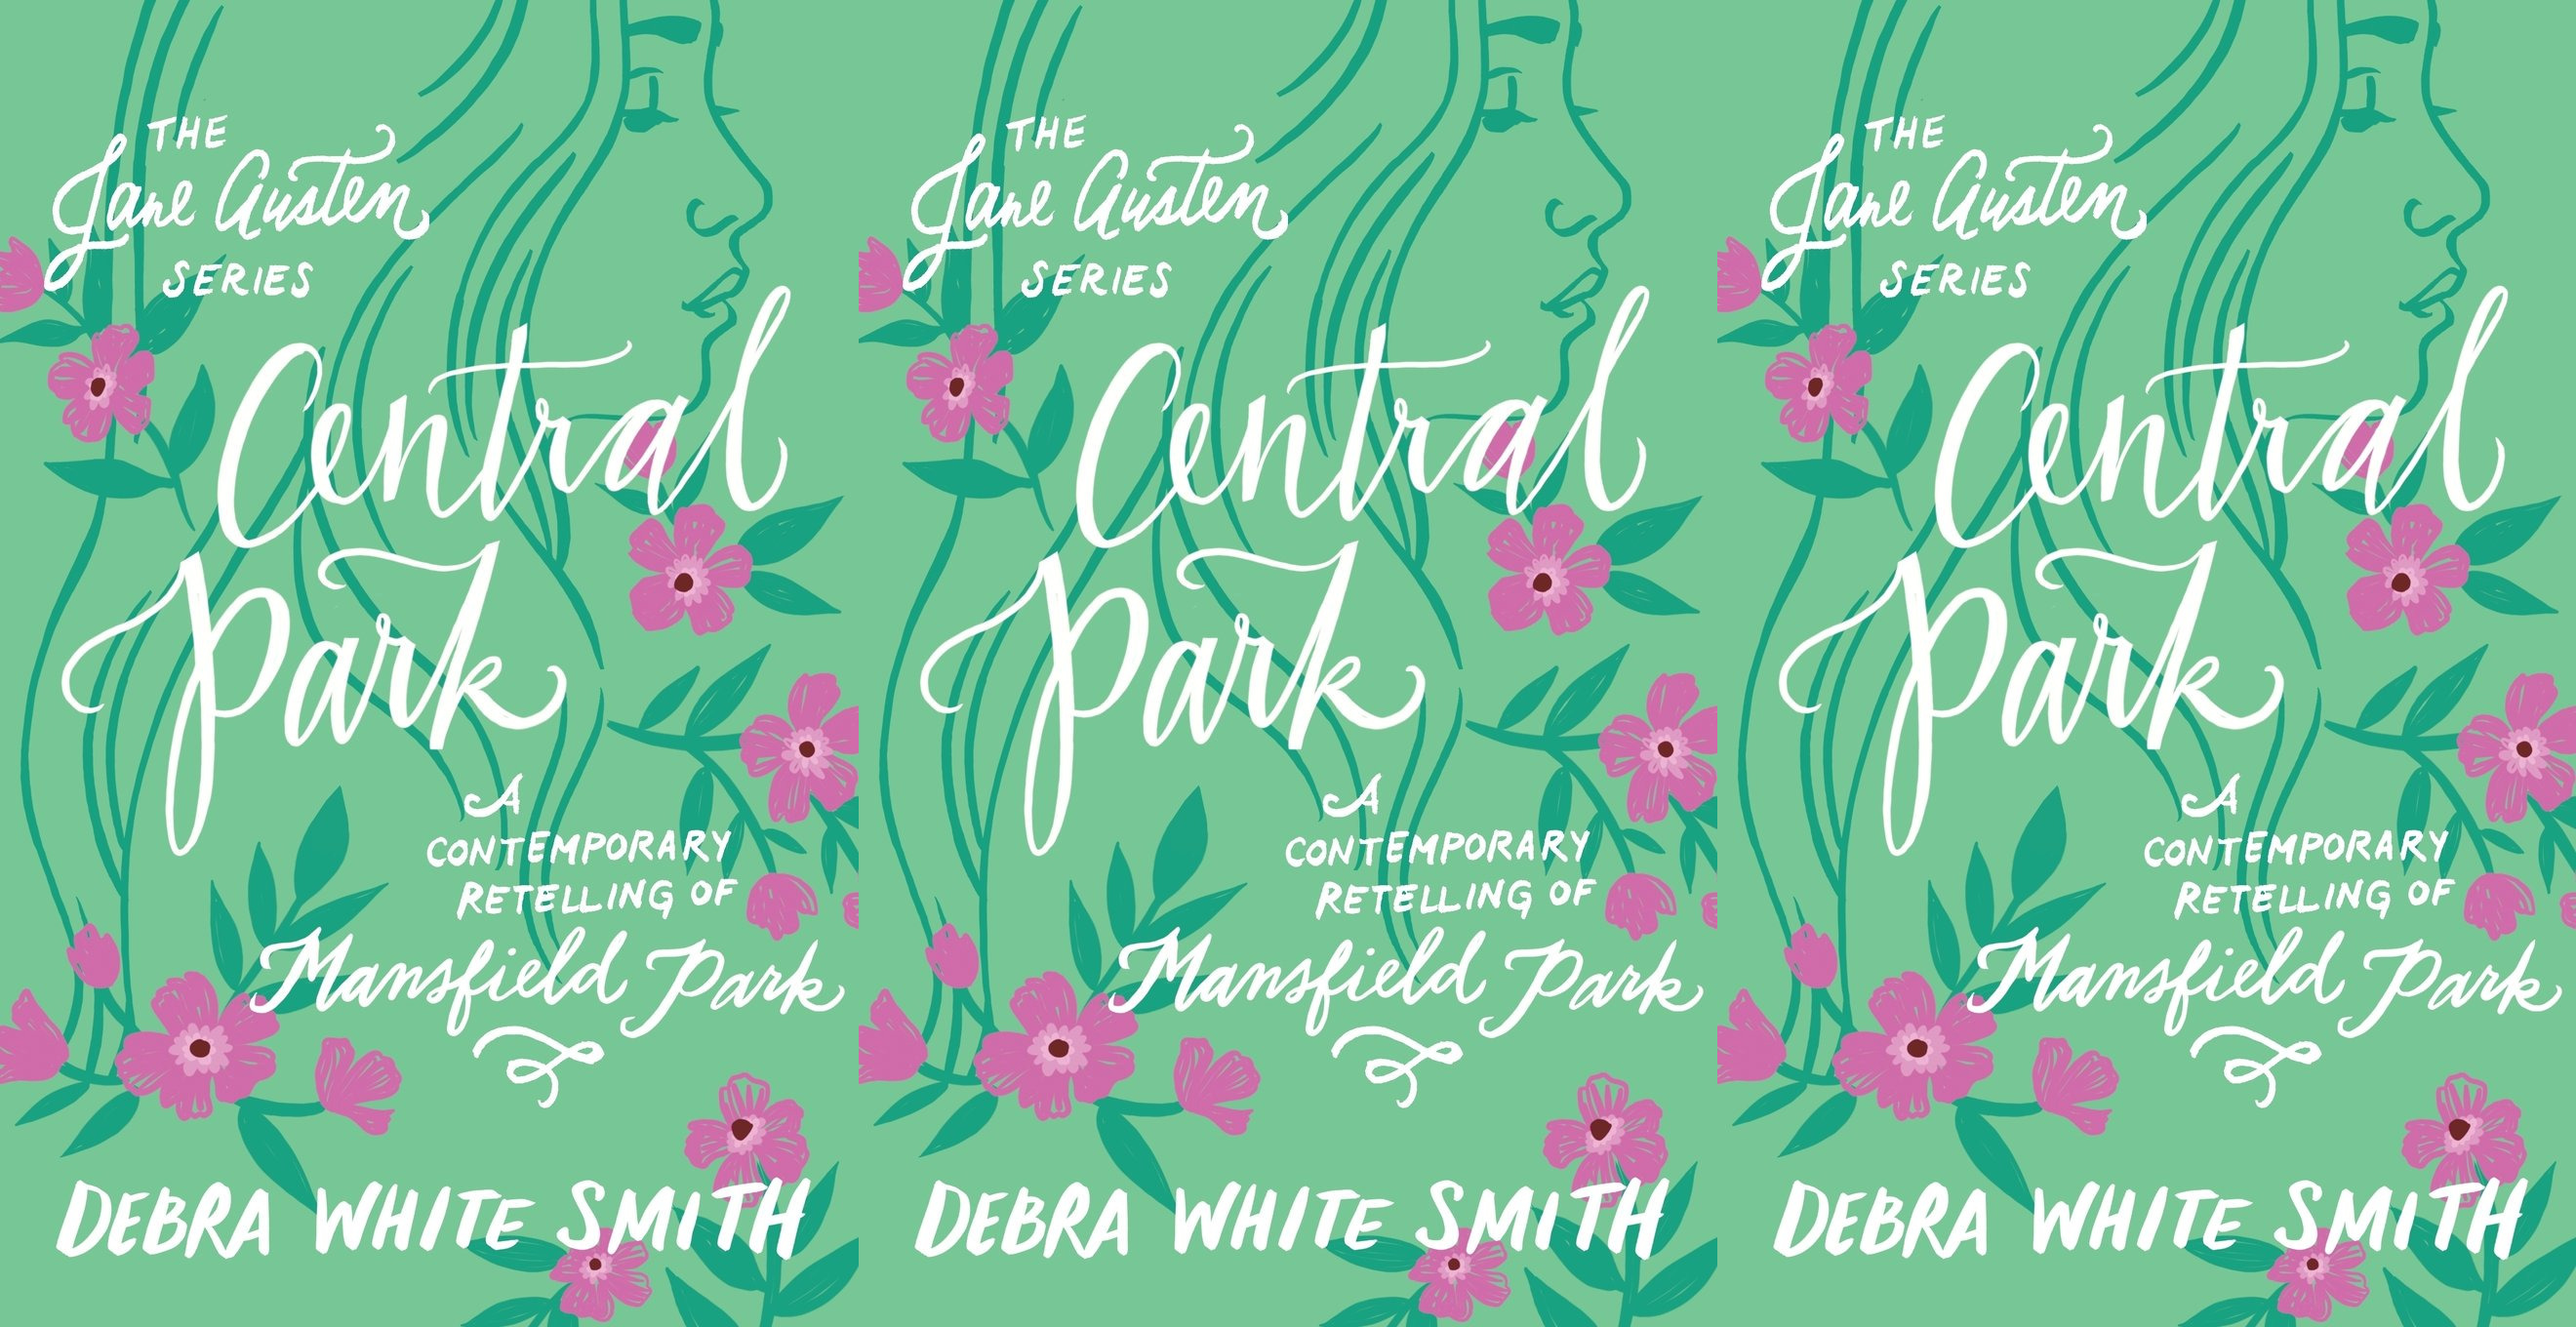 books inspired by jane austen, central park by debra white smith, books